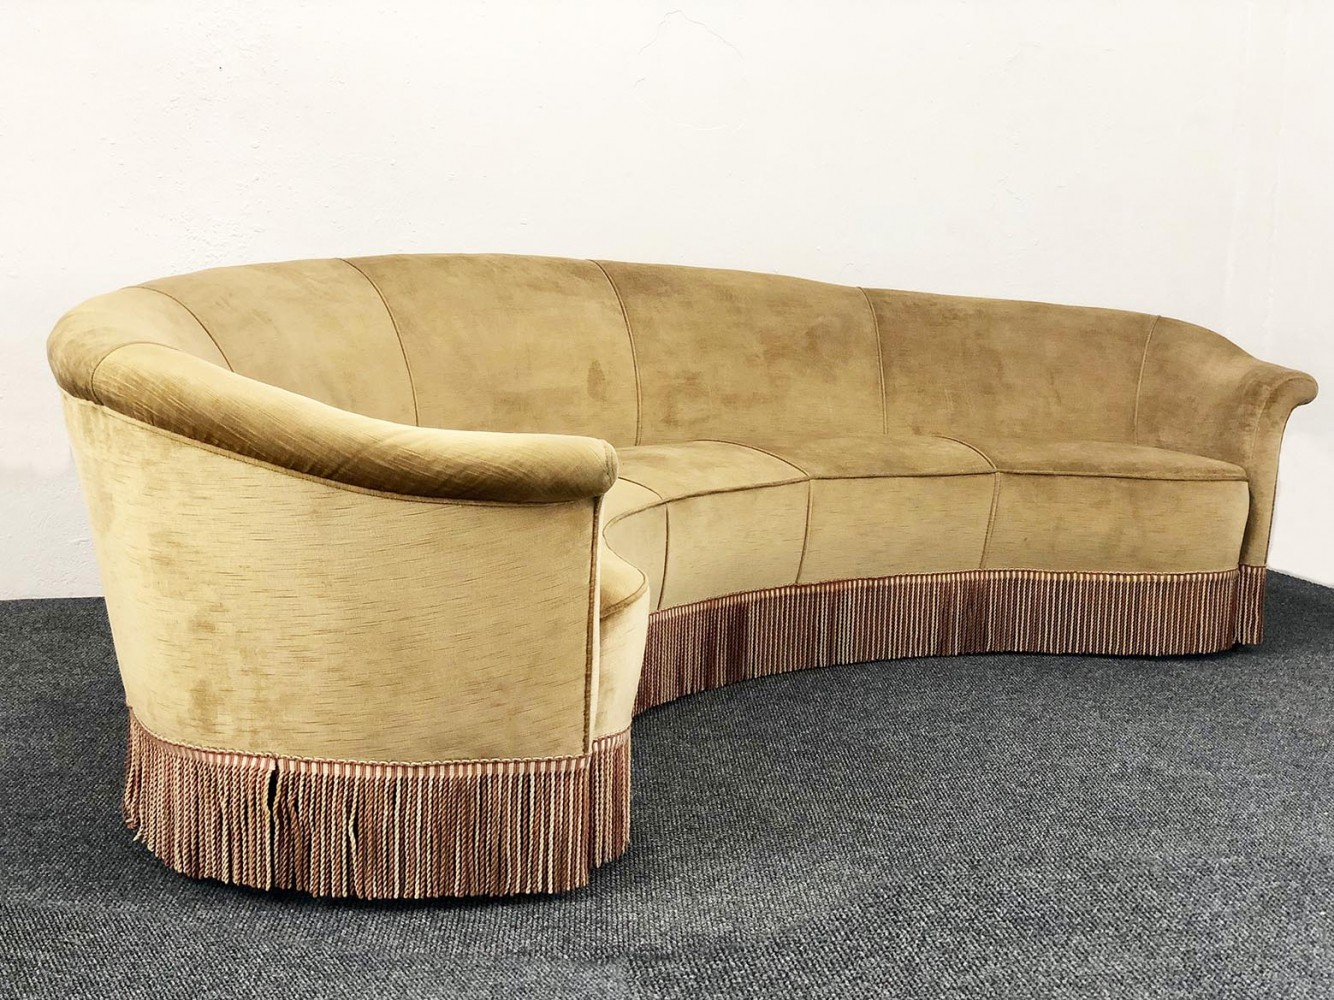 Ocher-colored velvet Sofa by Federico Munari, 1940s